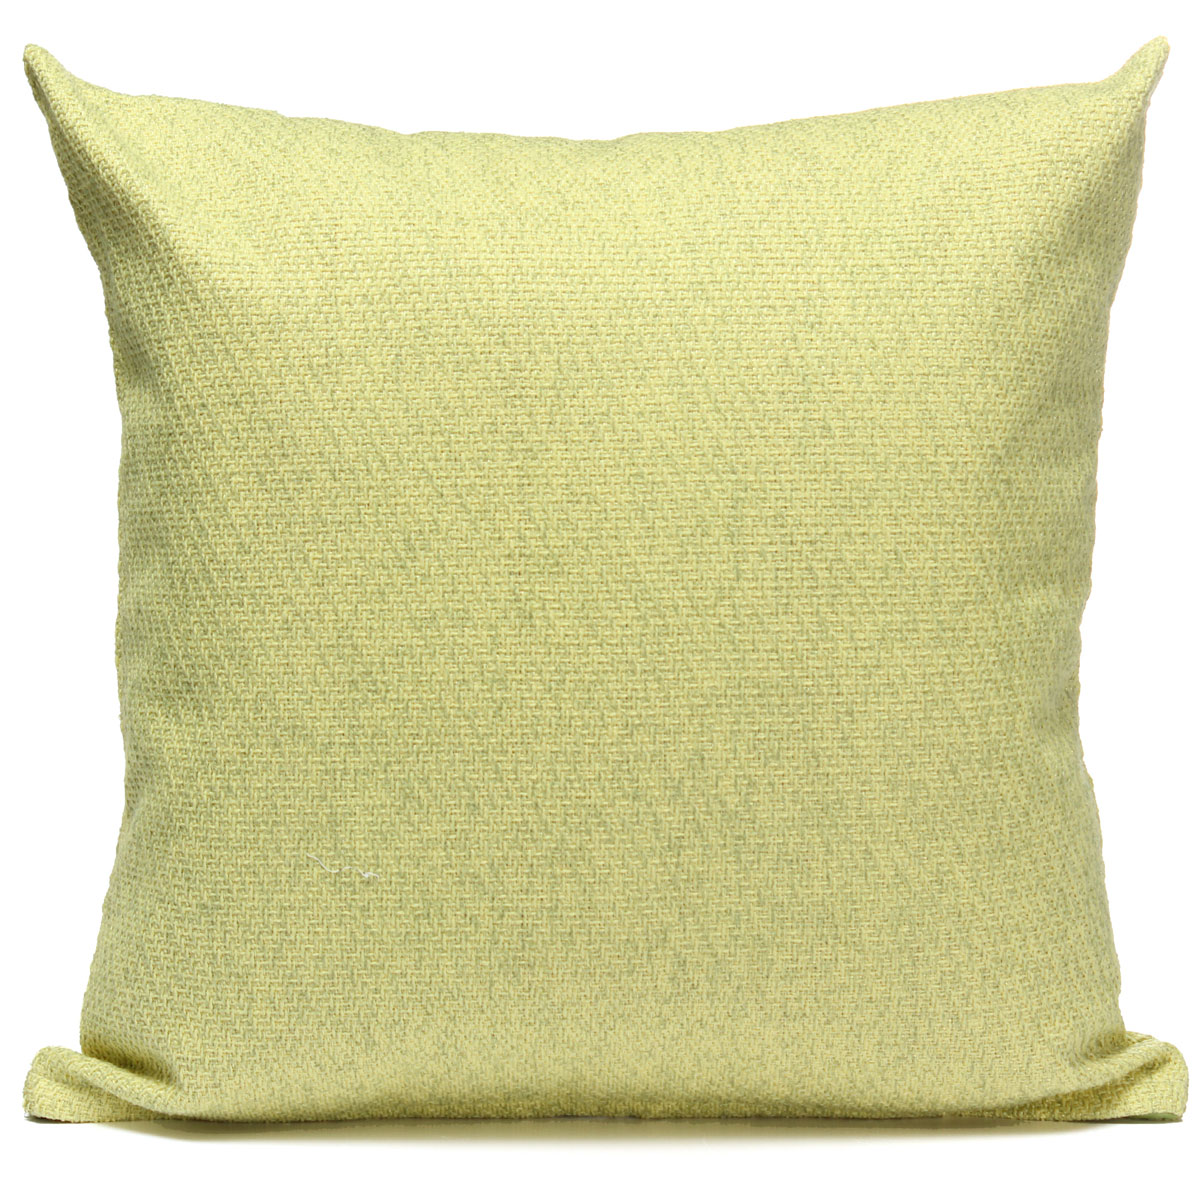 decorative throw pillow case cushion cover 17x17 inch solid color linen pillowslip protector w zipper for couch sofa home car